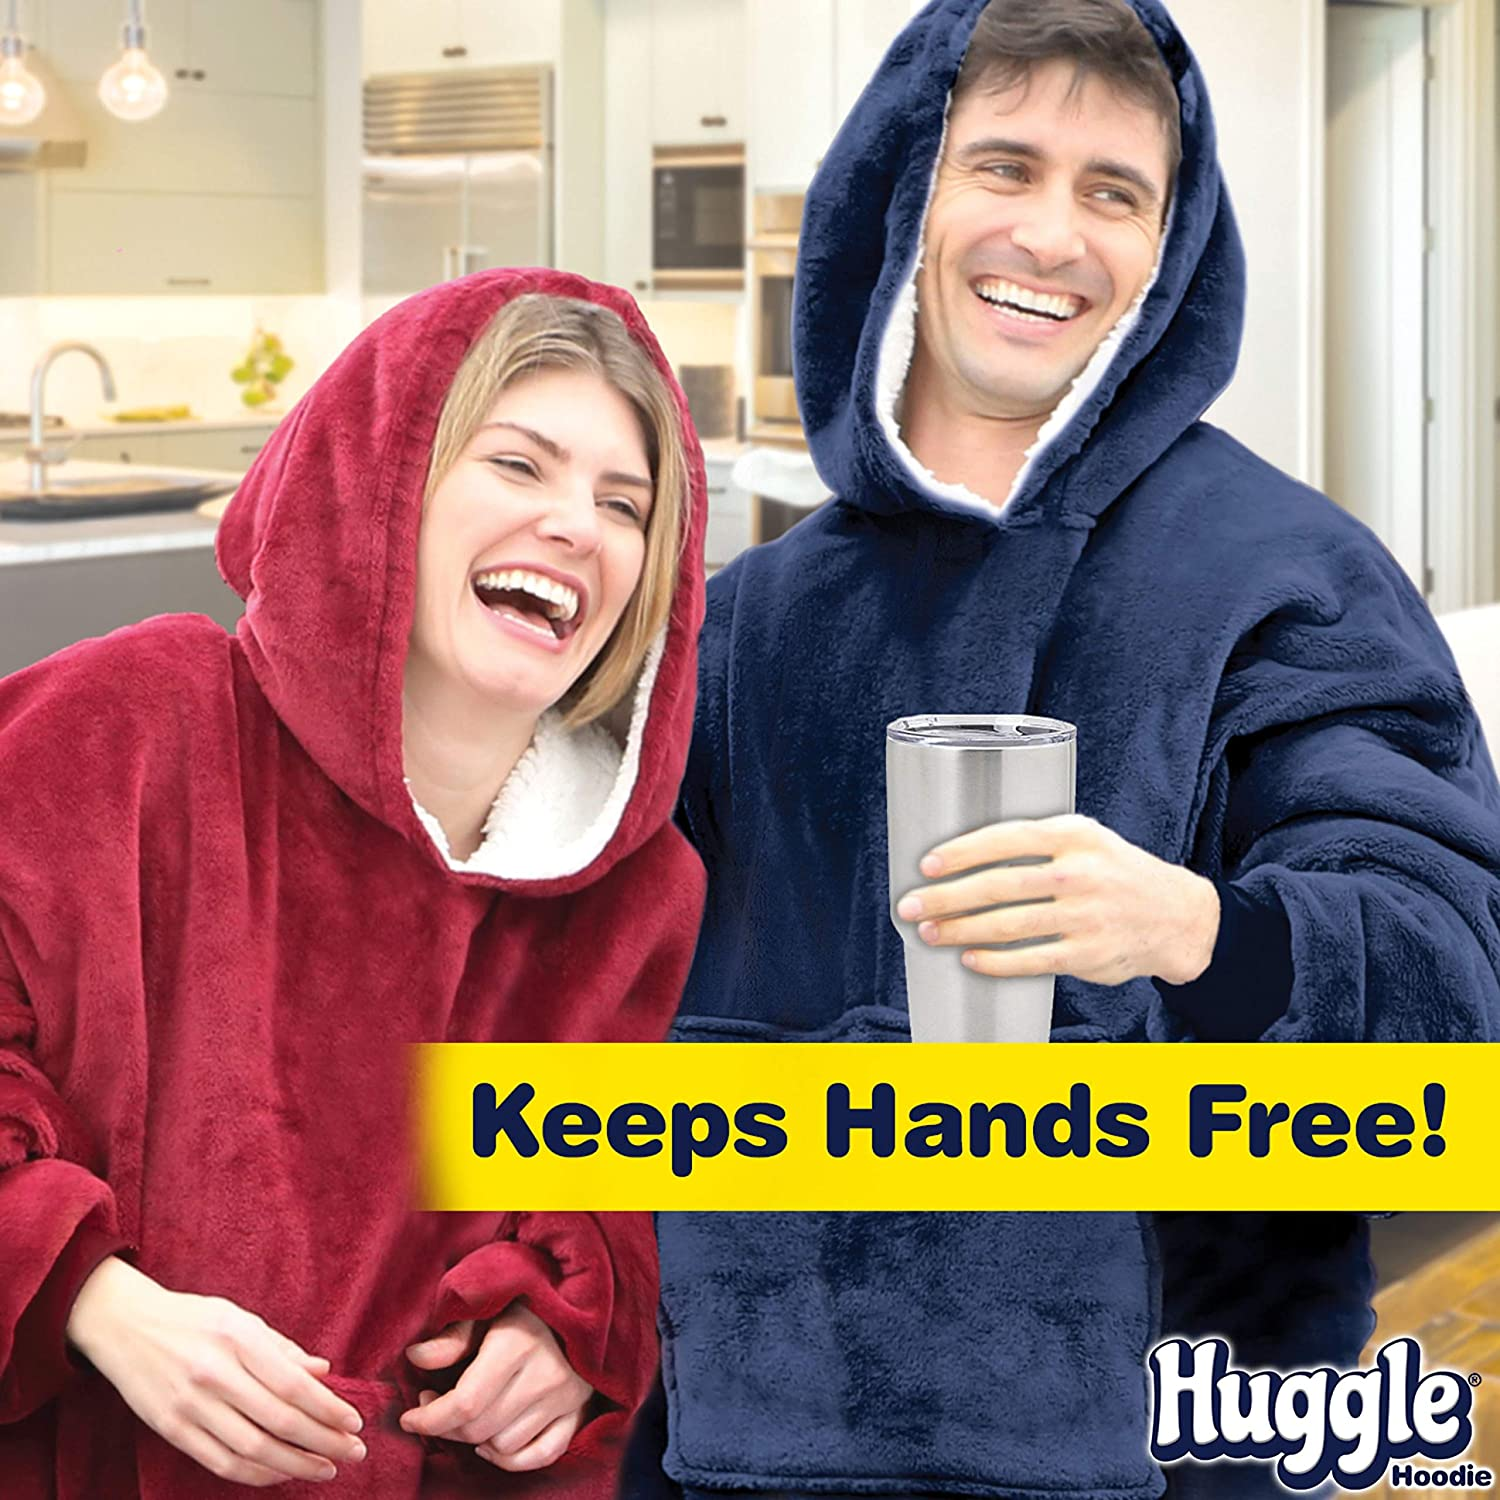 Ontel Huggle Hoodie - Hooded Robe Sweatshirt, Blue - As Seen on TV: Home & Kitchen